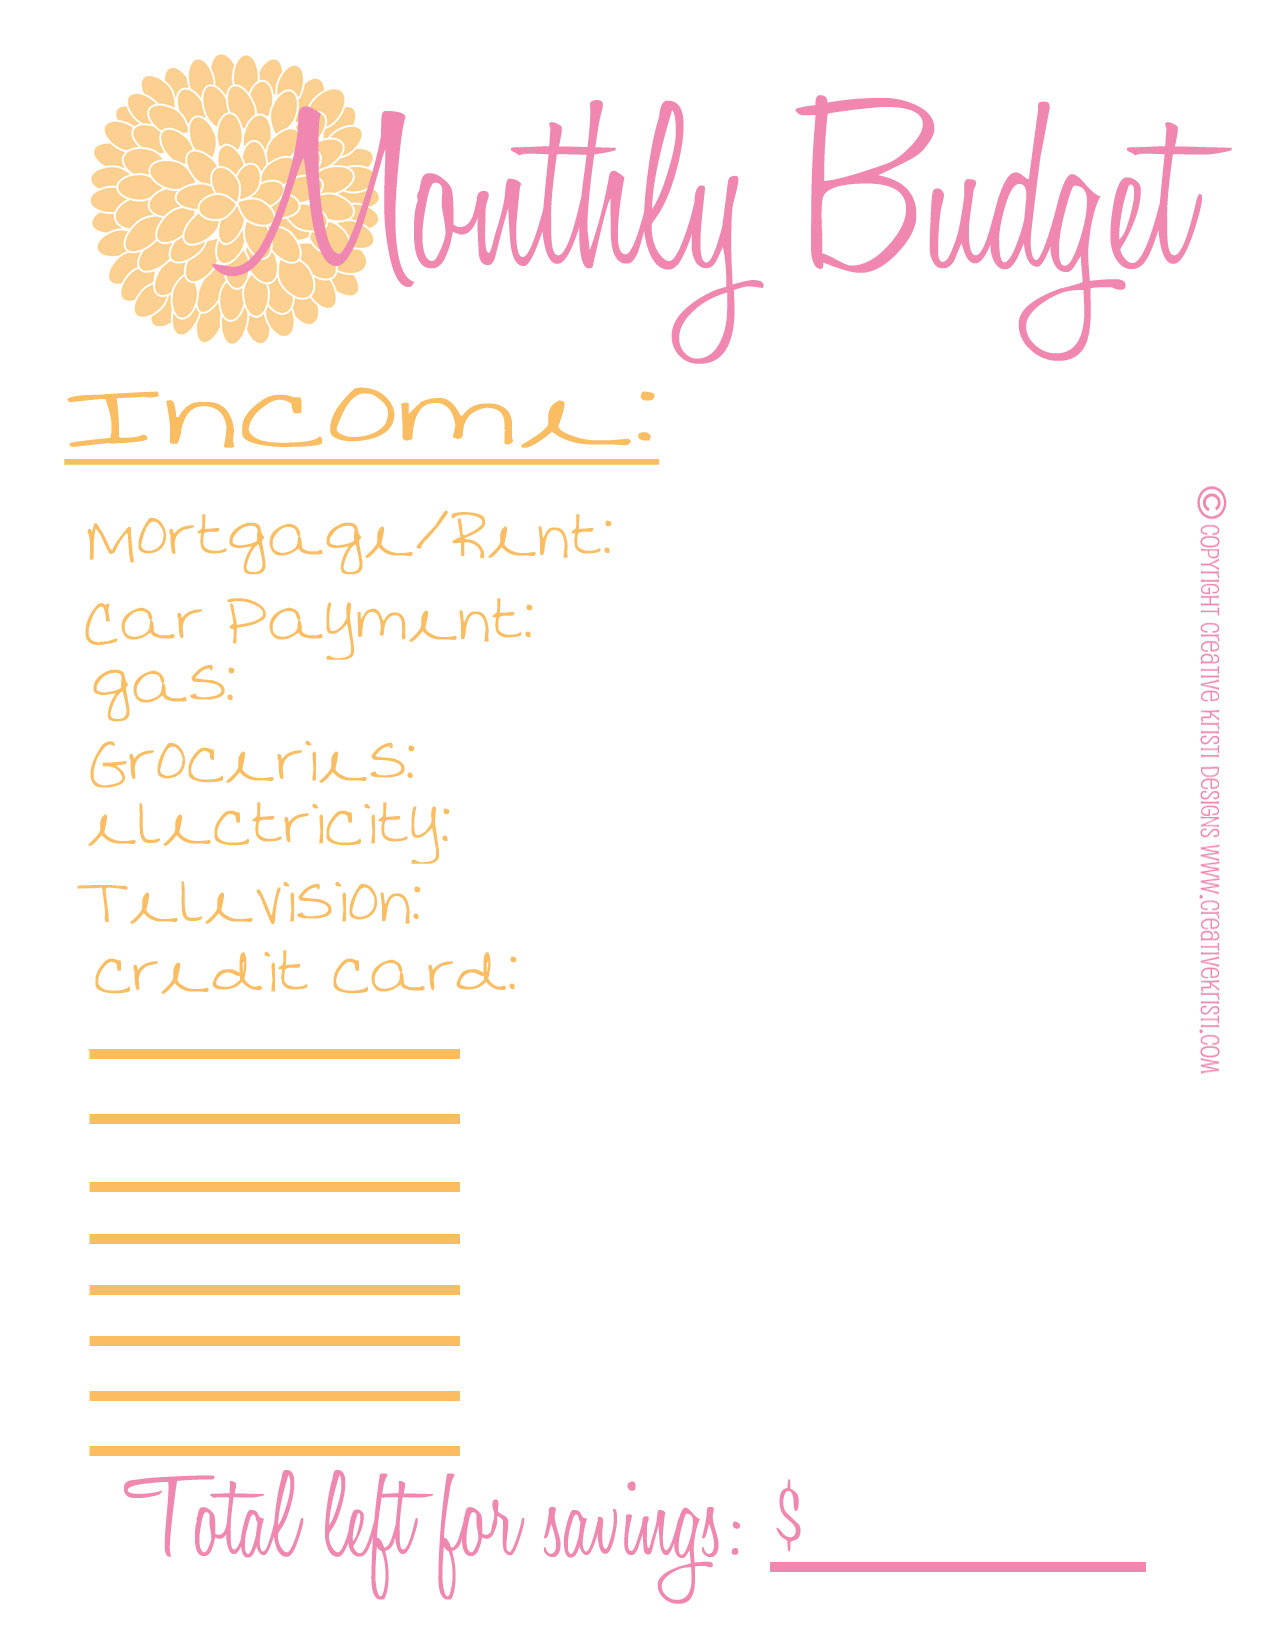 Free Printable Monthly Budget Sheet - Free Printable Budget Worksheet ...